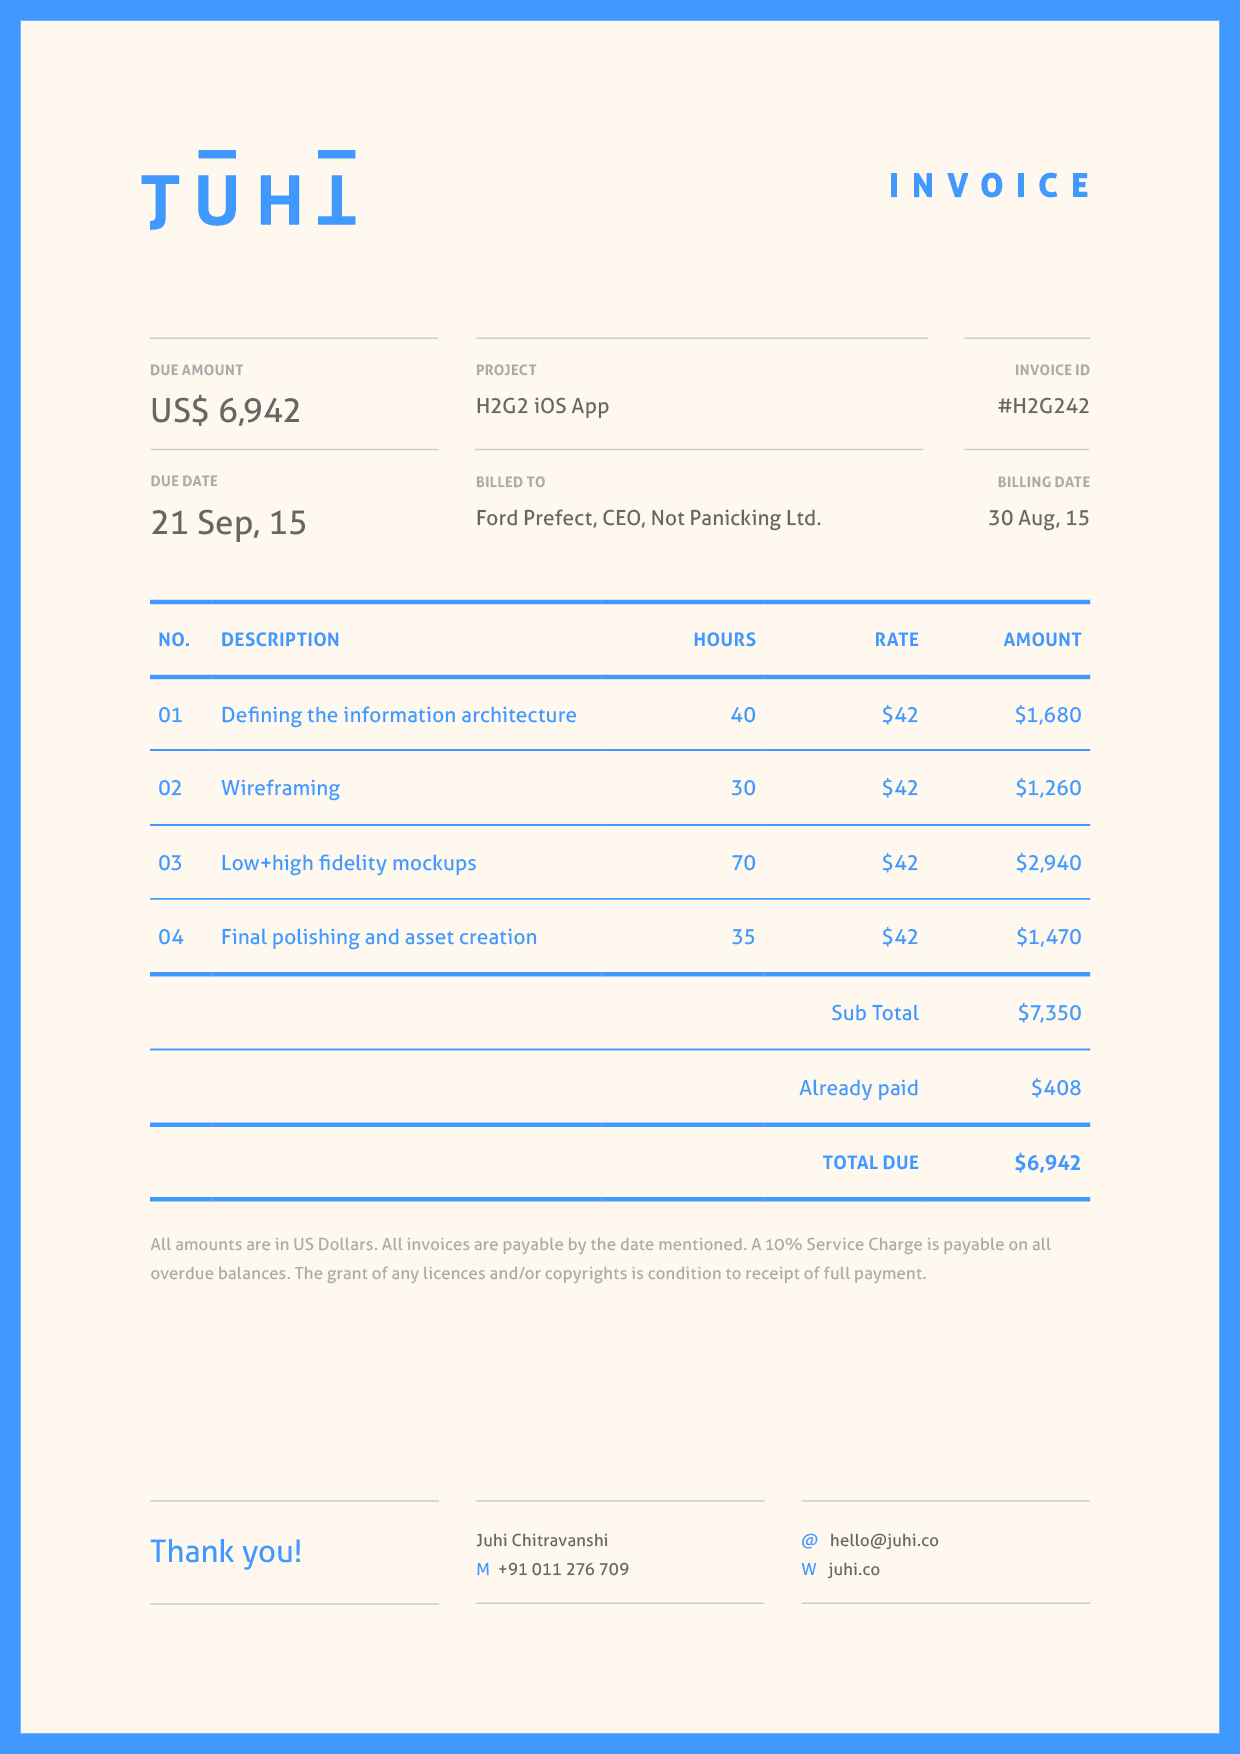 Usdgus  Marvellous Dont Hold Back On Your Invoice  Inspiring Designs  With Fair Invoice By Juhi Chitravanshi Follow With Amusing Rent Receipt Formats Also Sample Of House Rent Receipt In Addition Apcoa Vat Receipts And Global Depository Receipts Example As Well As Receipts And Payments Additionally Lic Online Premium Paid Receipt From Inspirationfeedcom With Usdgus  Fair Dont Hold Back On Your Invoice  Inspiring Designs  With Amusing Invoice By Juhi Chitravanshi Follow And Marvellous Rent Receipt Formats Also Sample Of House Rent Receipt In Addition Apcoa Vat Receipts From Inspirationfeedcom